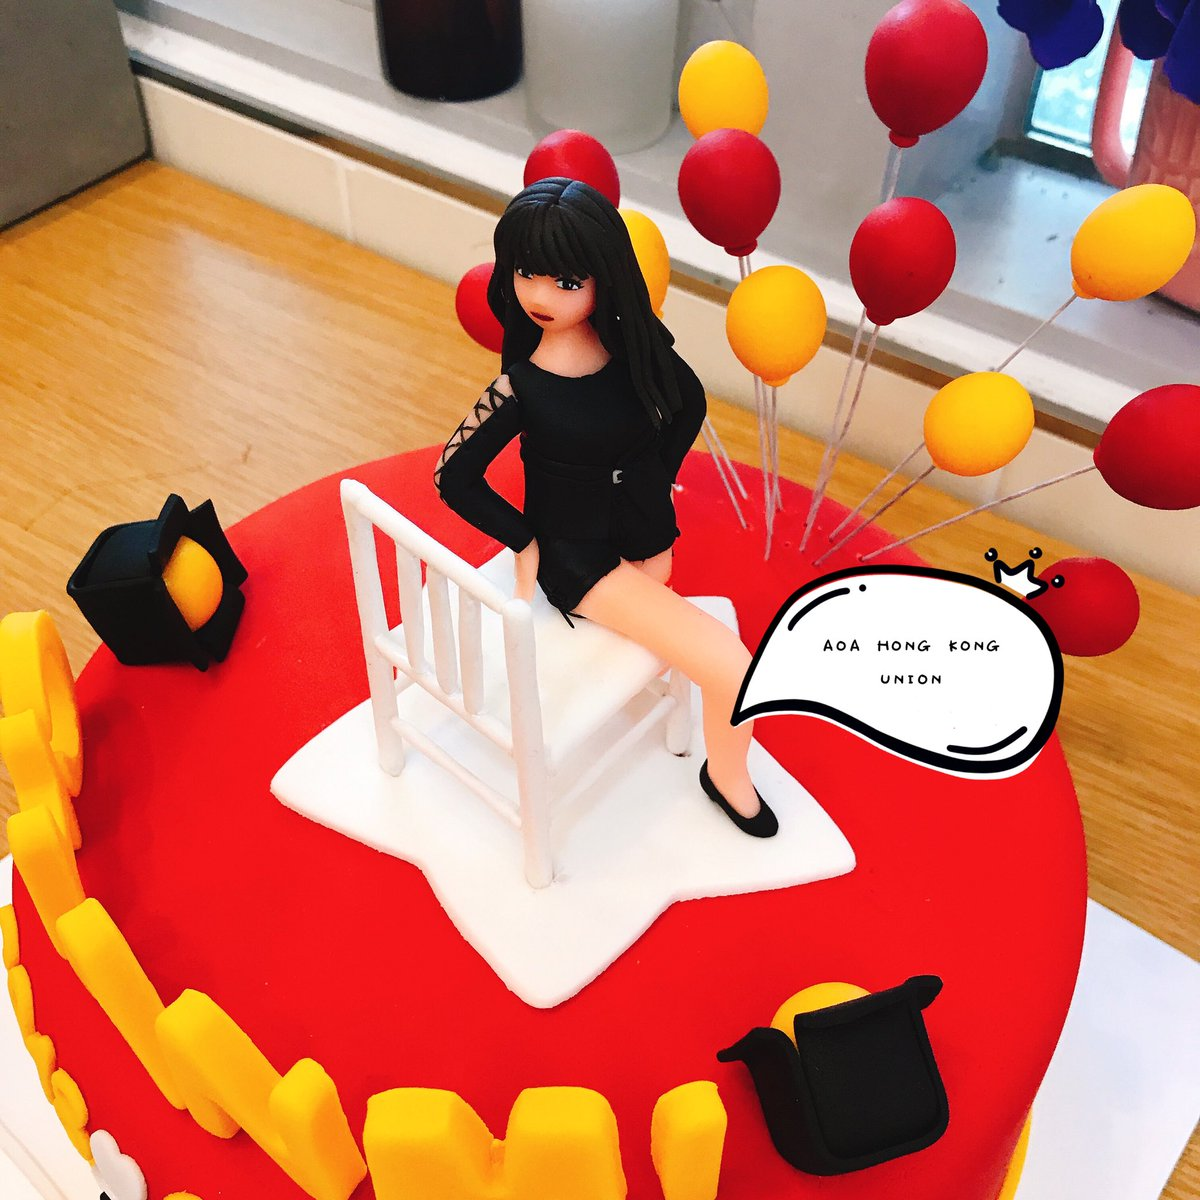 AOA HONG KONG UNION On Twitter Our Birthday Cake To Chanmi Has